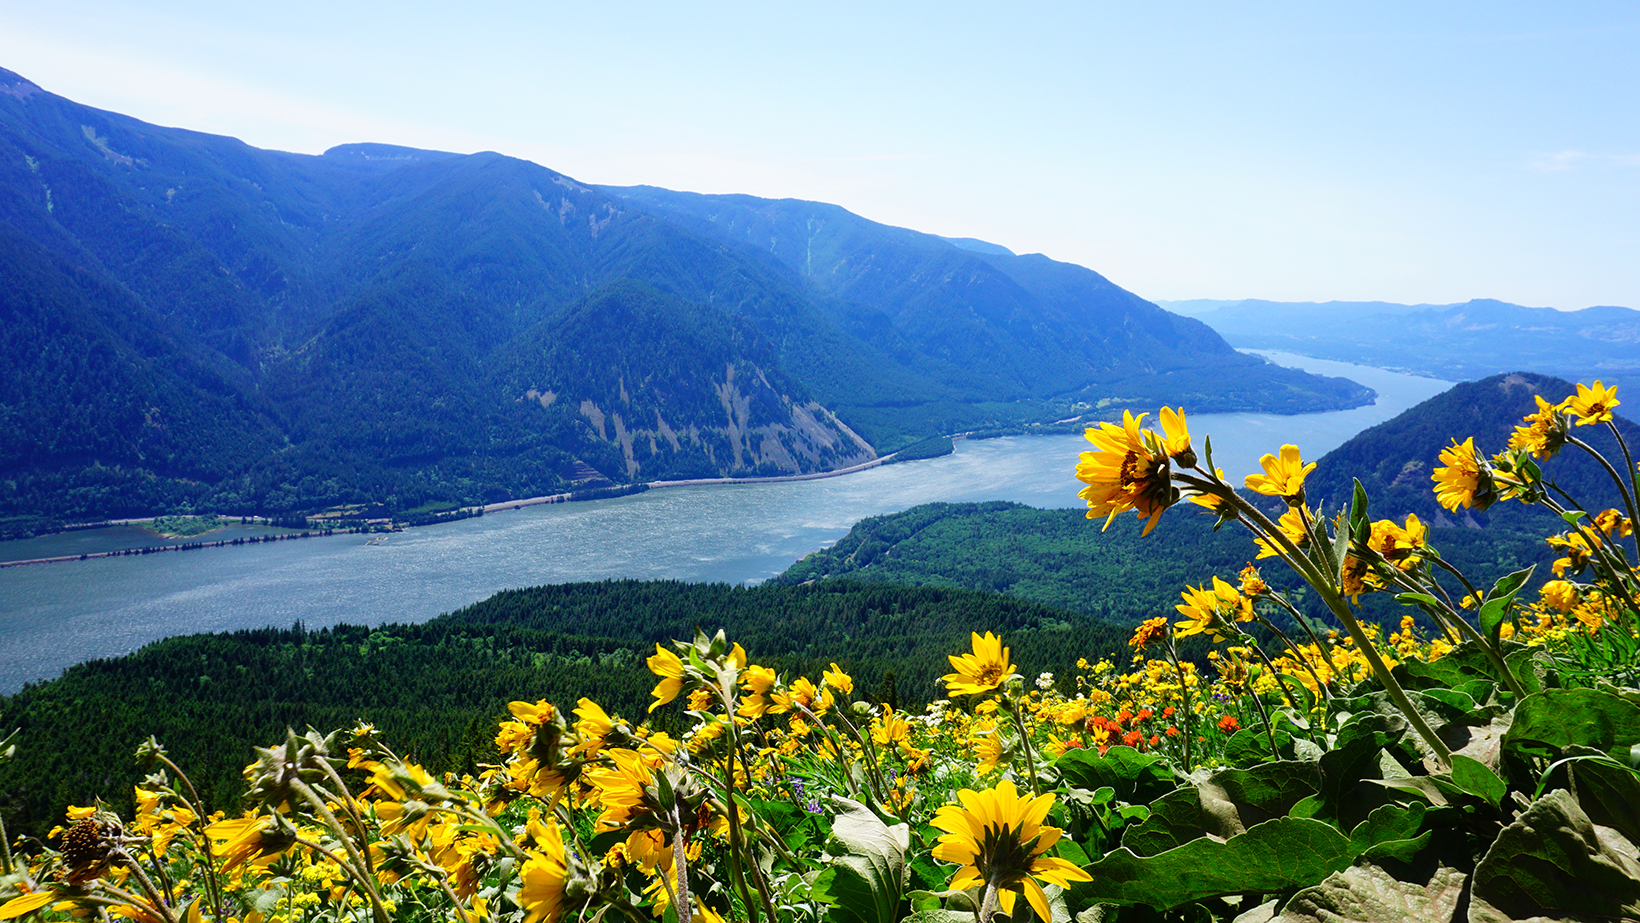 View of the Columbia River winding through the Gorge from the top of Dog Mountain in full spring bloom